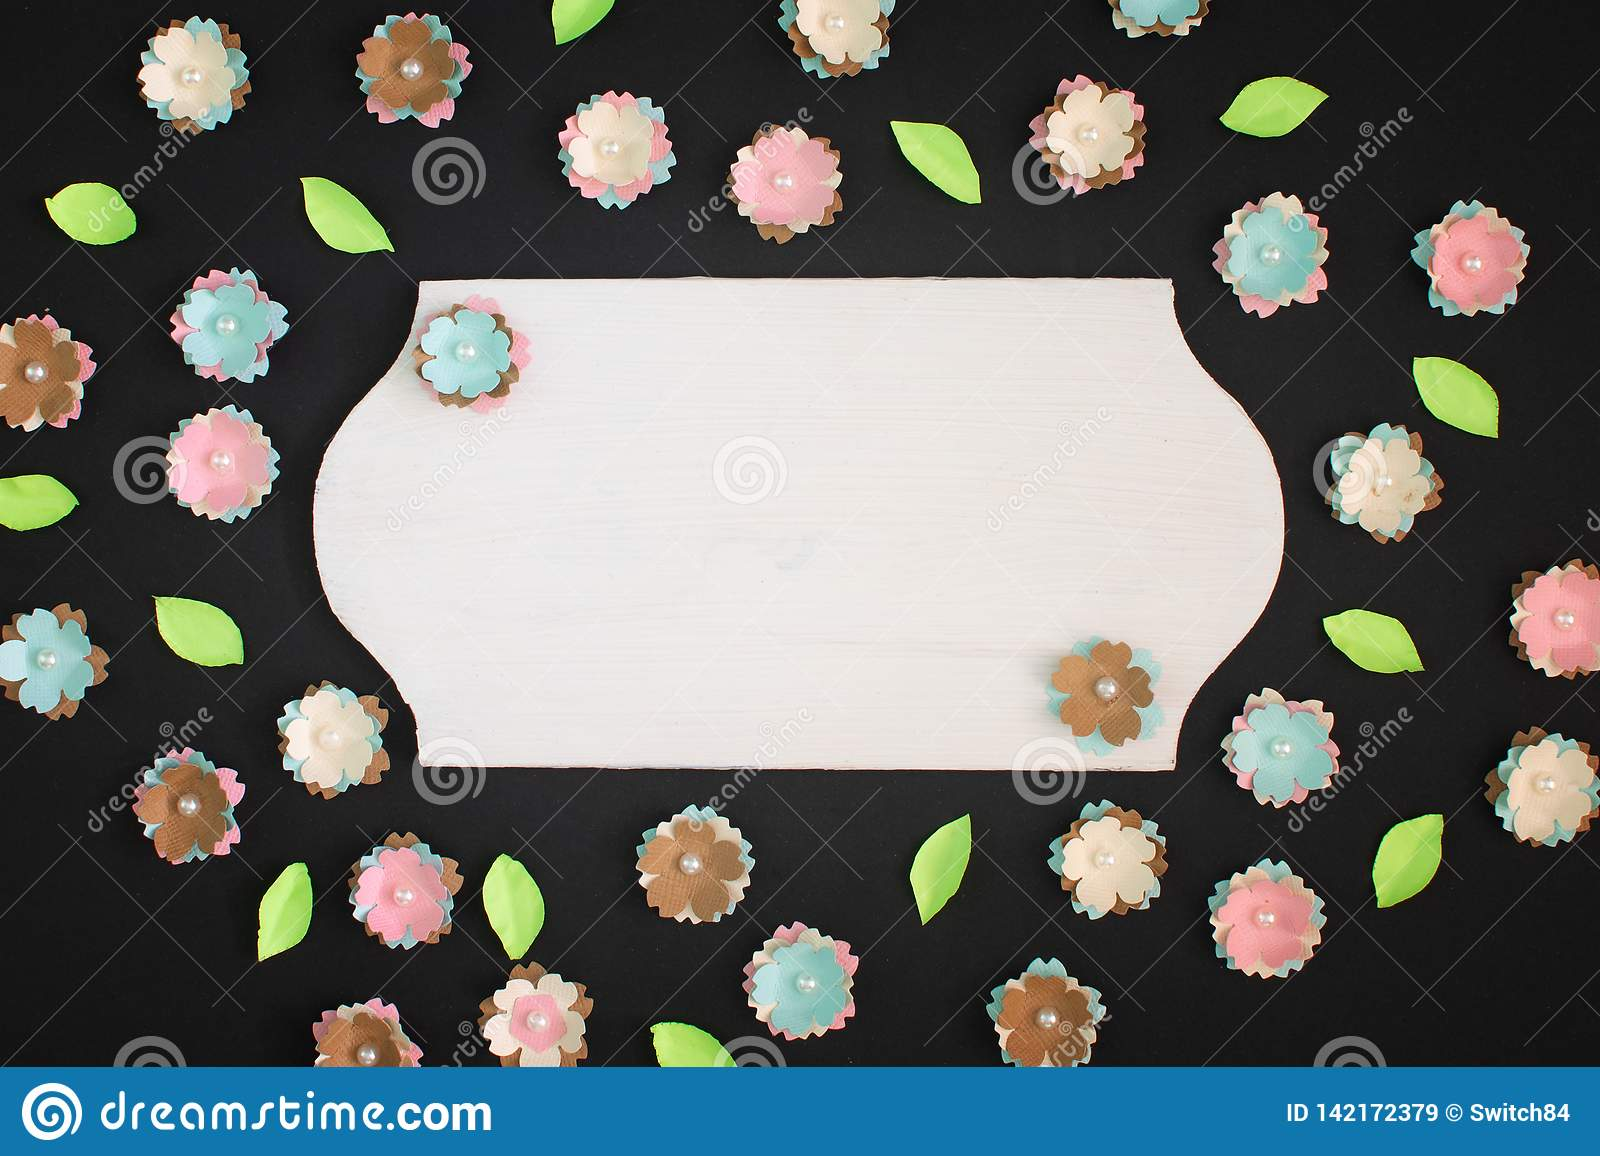 On A Black Background Small Flowers Made Of Paper Are Randomly